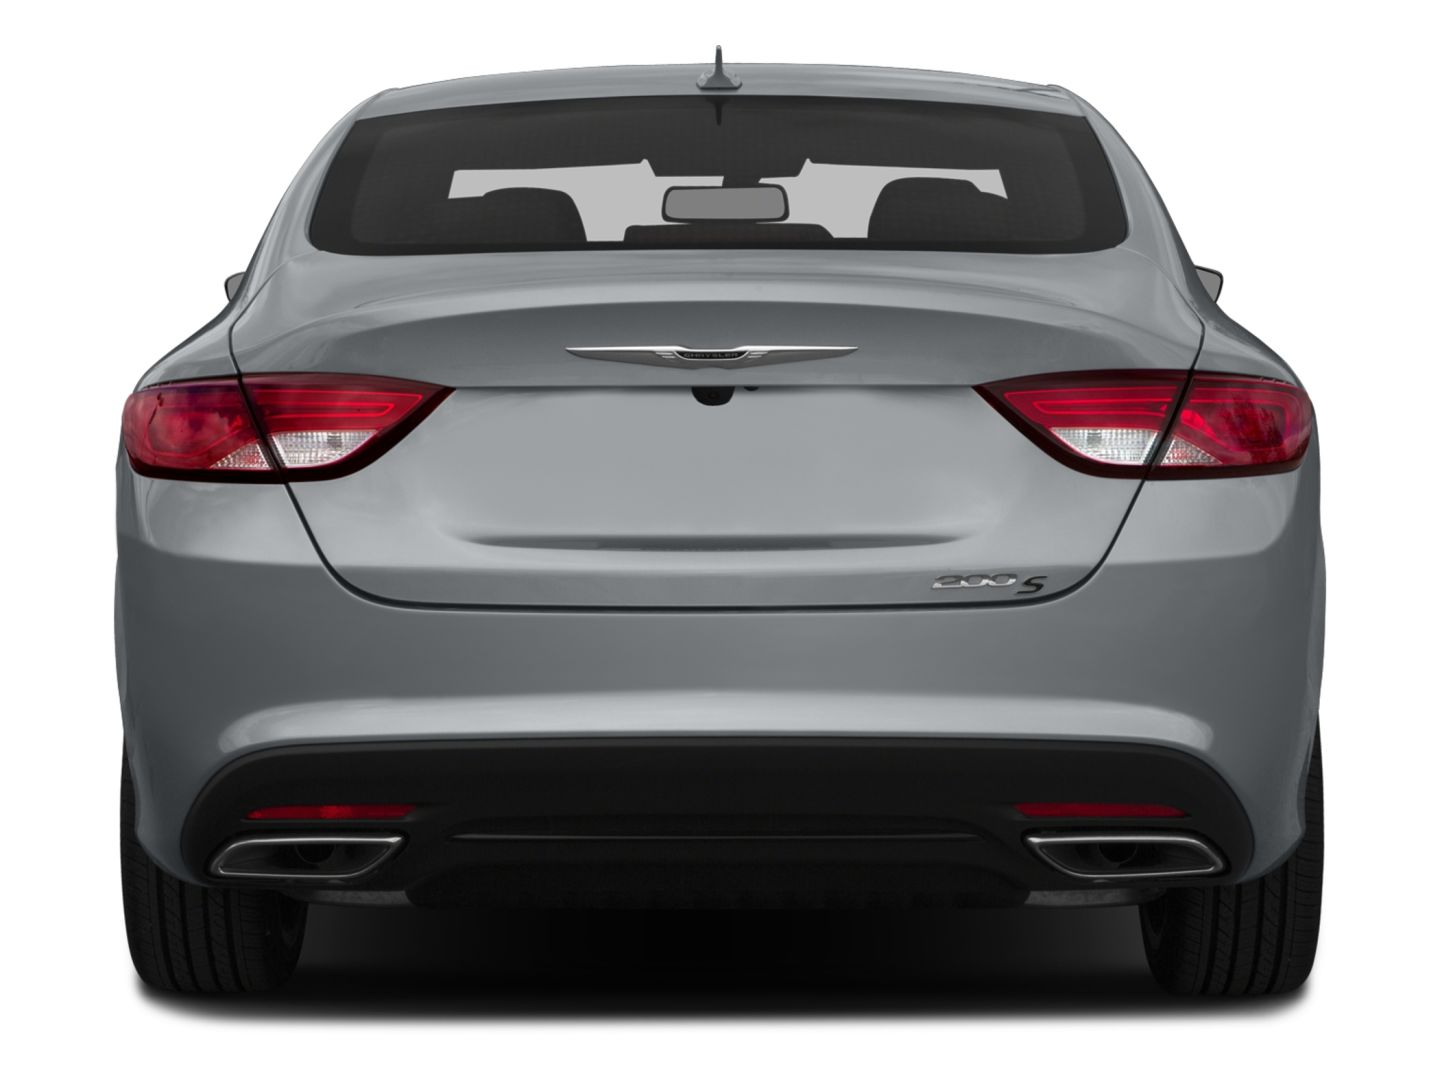 2015 Chrysler 200 S for sale in Edmonton, Alberta